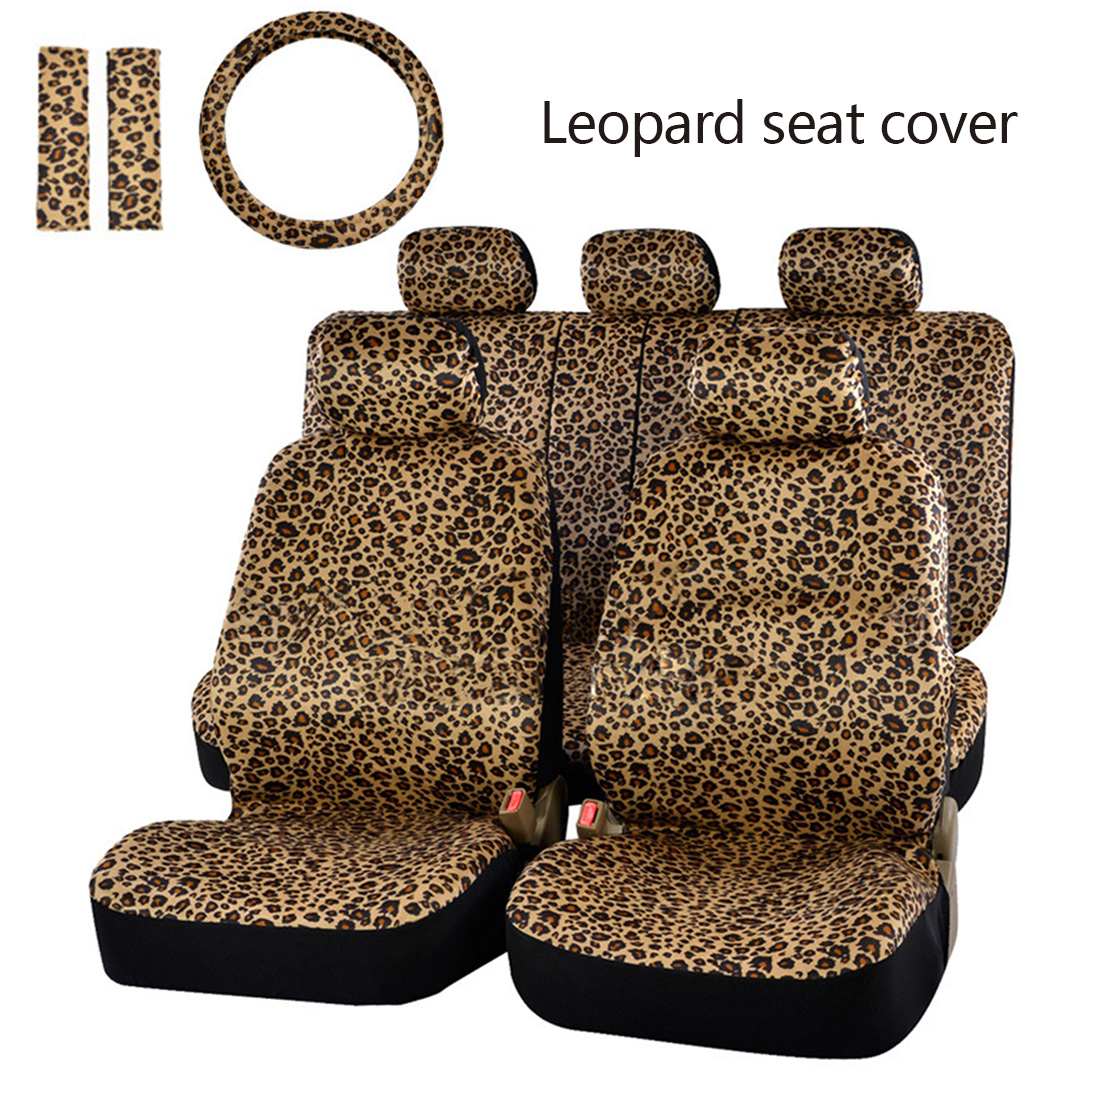 Dewtreetali Leopard Print Car Seat Cover Universal Fit Seat Belt Pads Universal Steering Wheel Car Seat Protector Car Styling dewtreetali universal automoblies seat cover four seaons car seat protector full set car accessories car styling for vw bmw audi